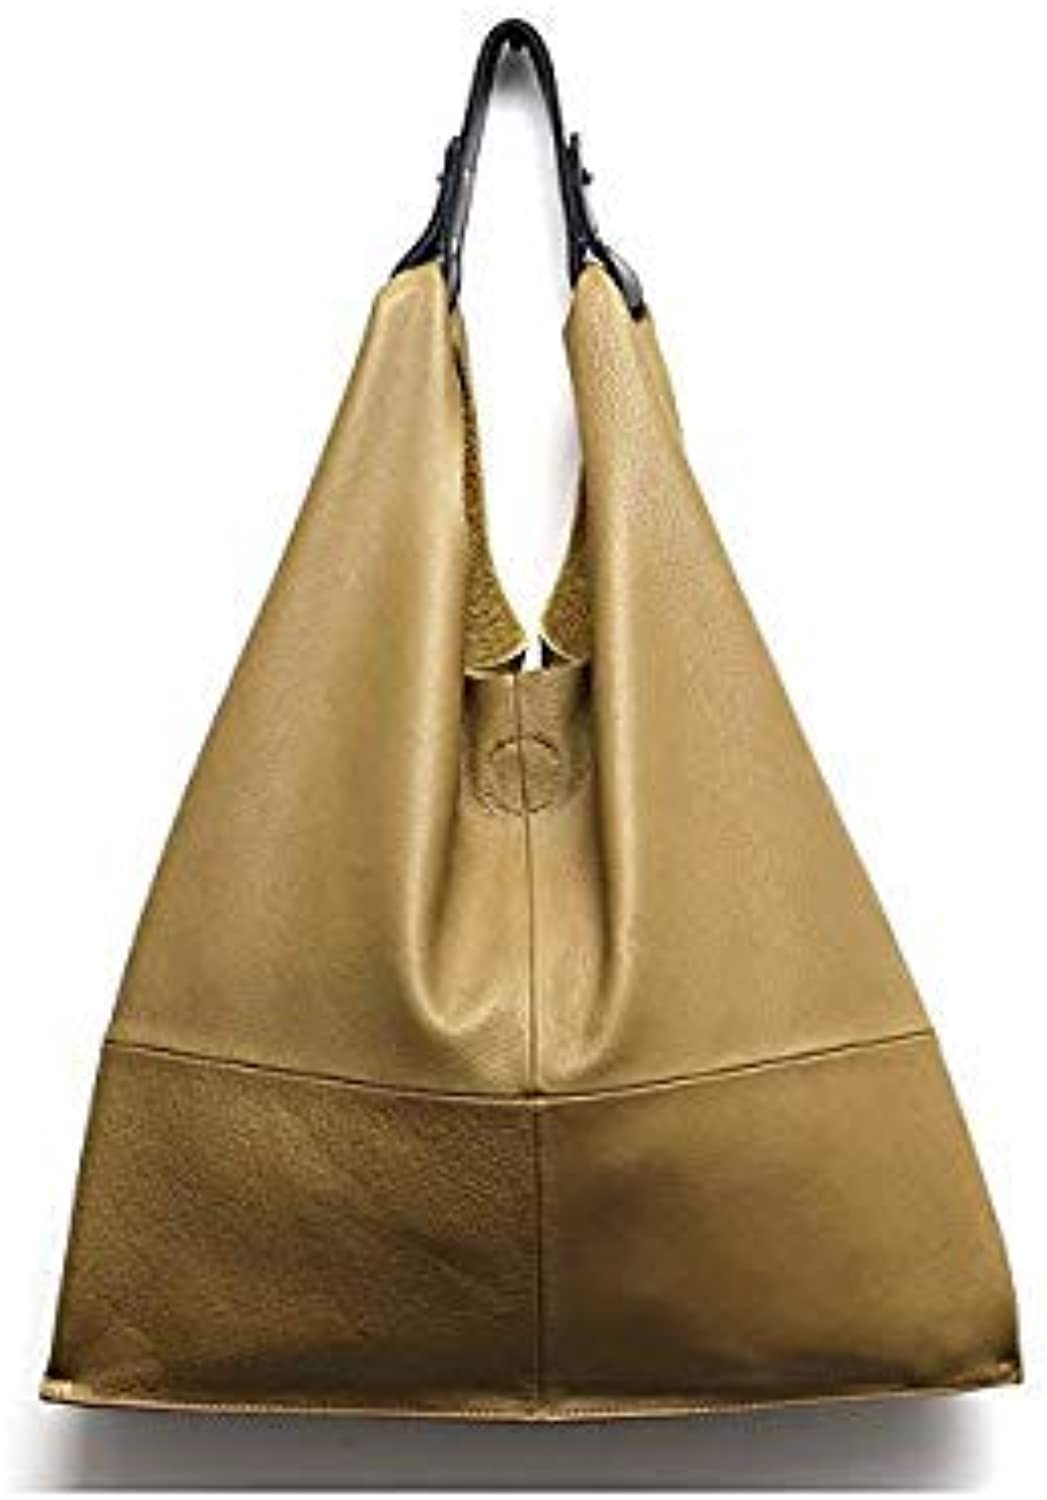 Bloomerang MONFERE Casual Women Hobo Bag Soft Genuine Cow Leather Fashion Shoulder Bags Female Large Tote Bucket Shopping Handbag&Liner Bag color Yellow